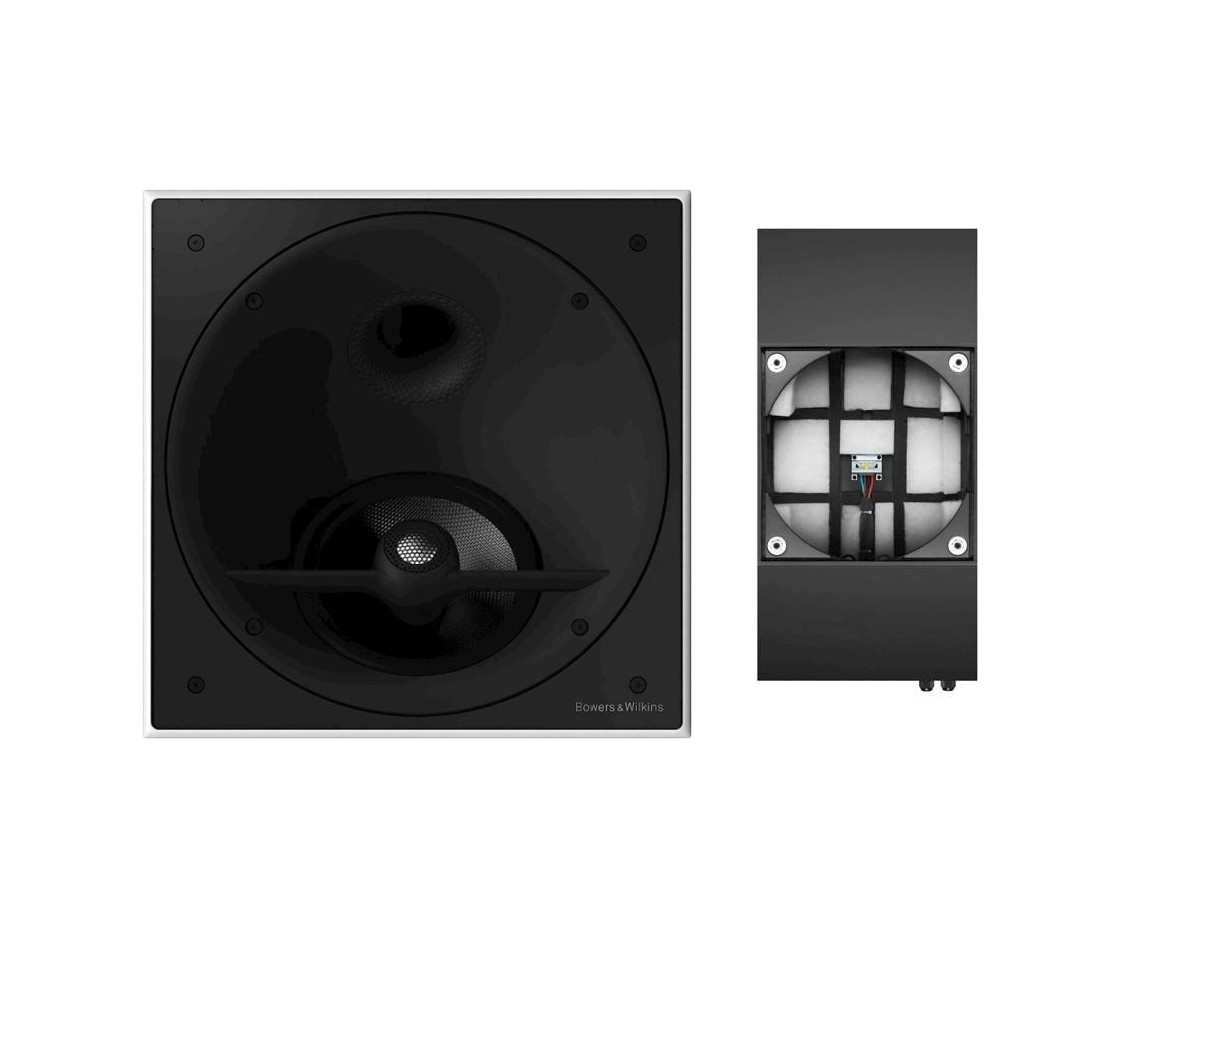 Bowers & Wilkins CCM8.5 D + BBC85 In-Ceiling Speaker & Back Box